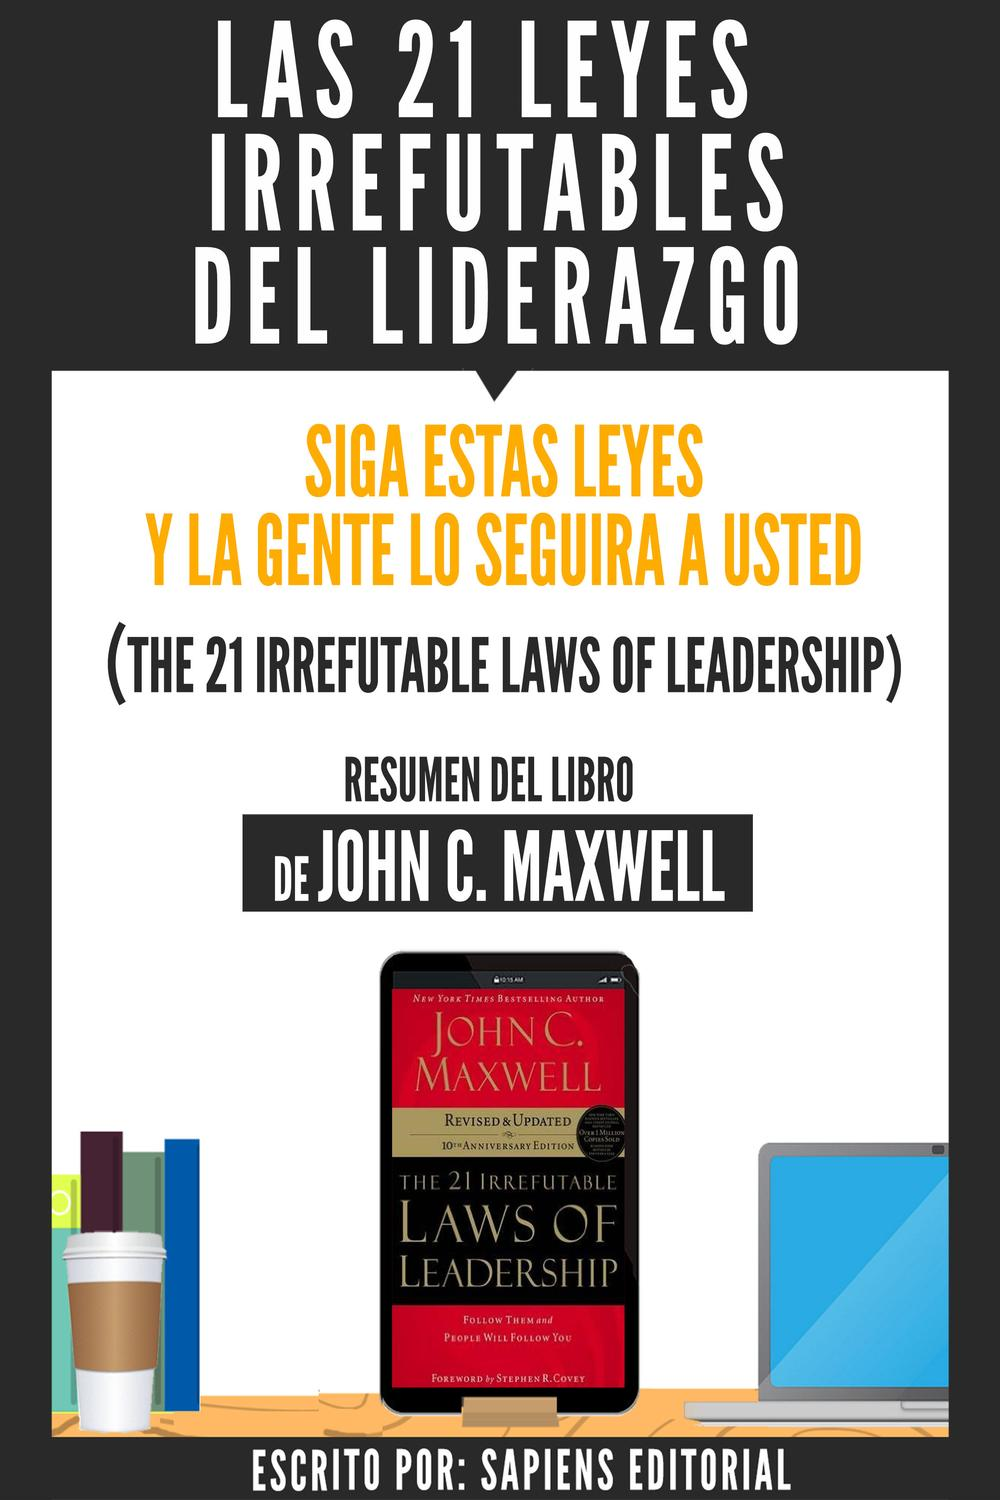 Pdf Las 21 Leyes Irrefutables Del Liderazgo Siga Estas Leyes Y La Gente Lo Seguira A Usted The 21 Irrefutable Laws Of Leadership Resumen Del Libro De John C Maxwell By Perlego